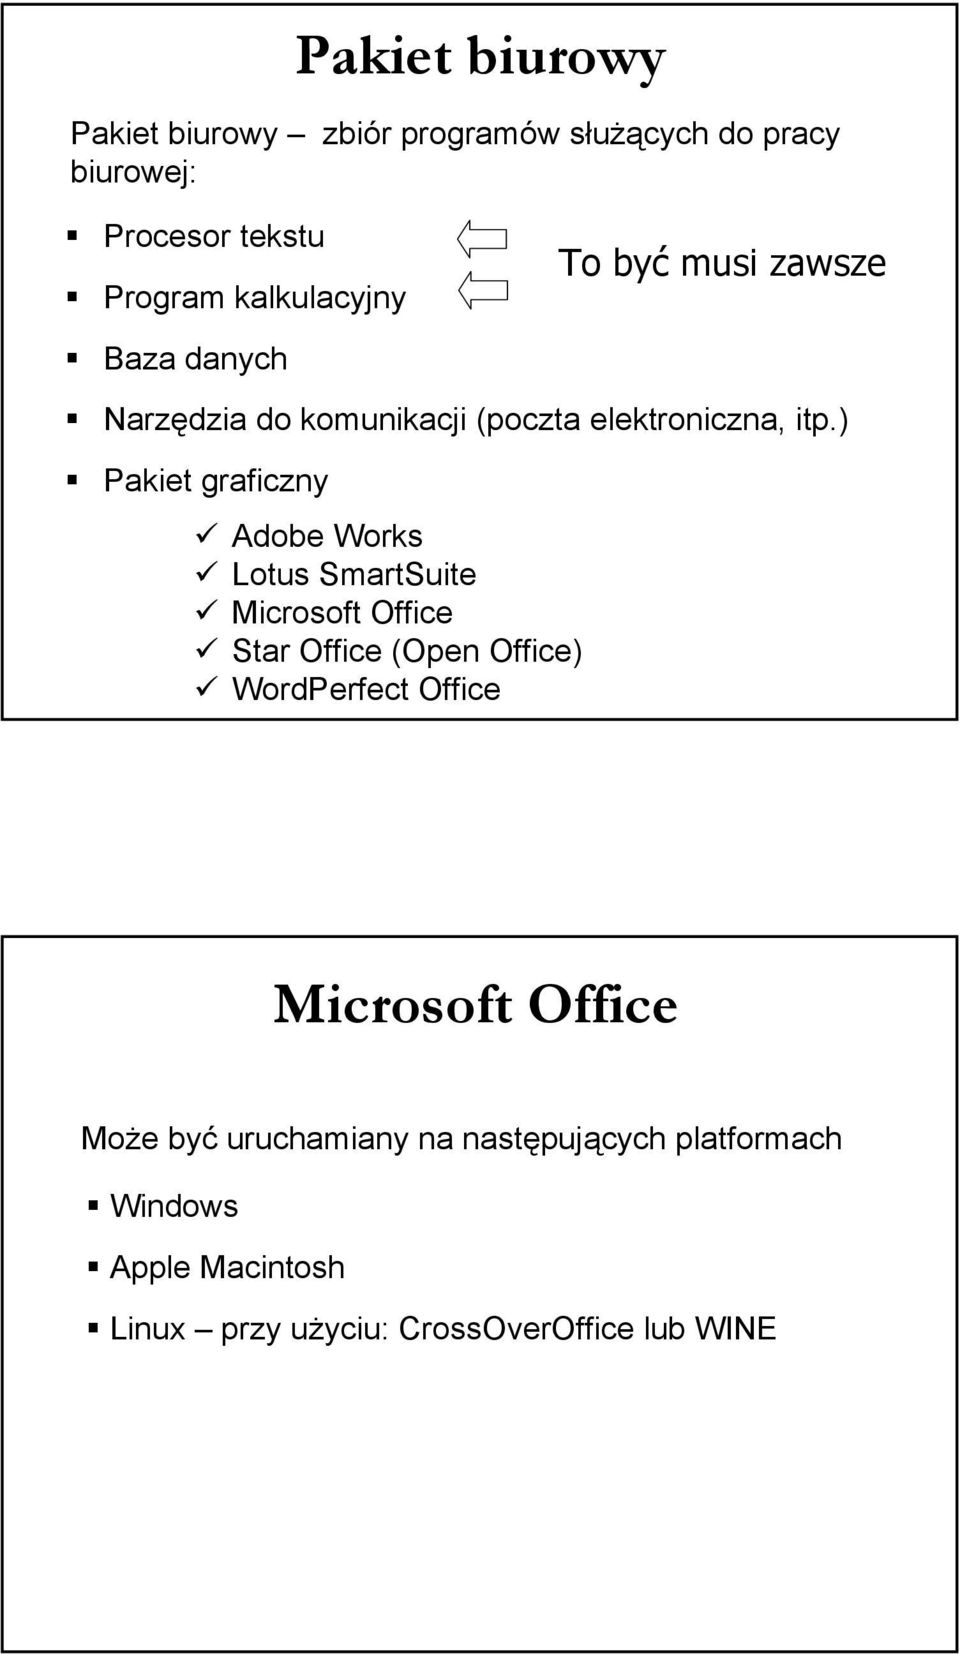 ) Pakiet graficzny Adobe Works Lotus SmartSuite Microsoft Office Star Office (Open Office) WordPerfect Office